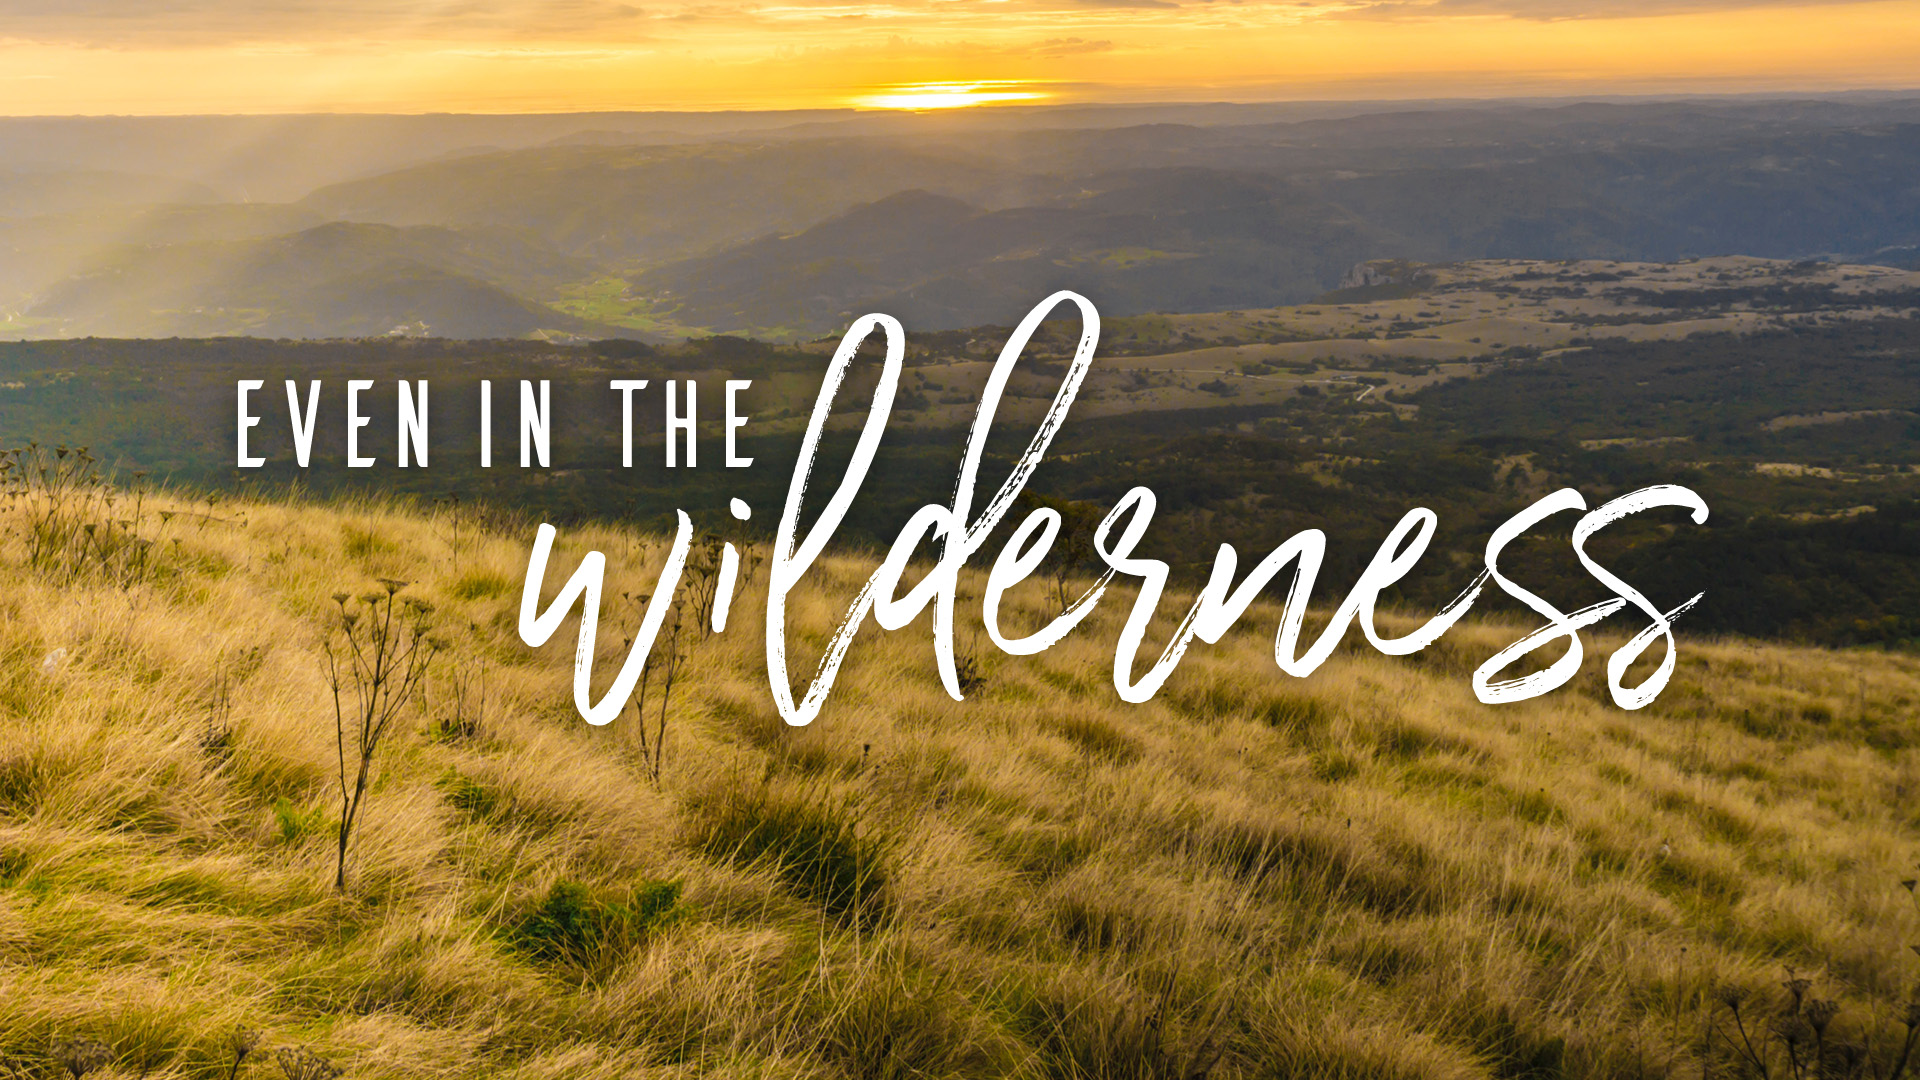 Play and Sing: He is Worthy, Even in the Wilderness